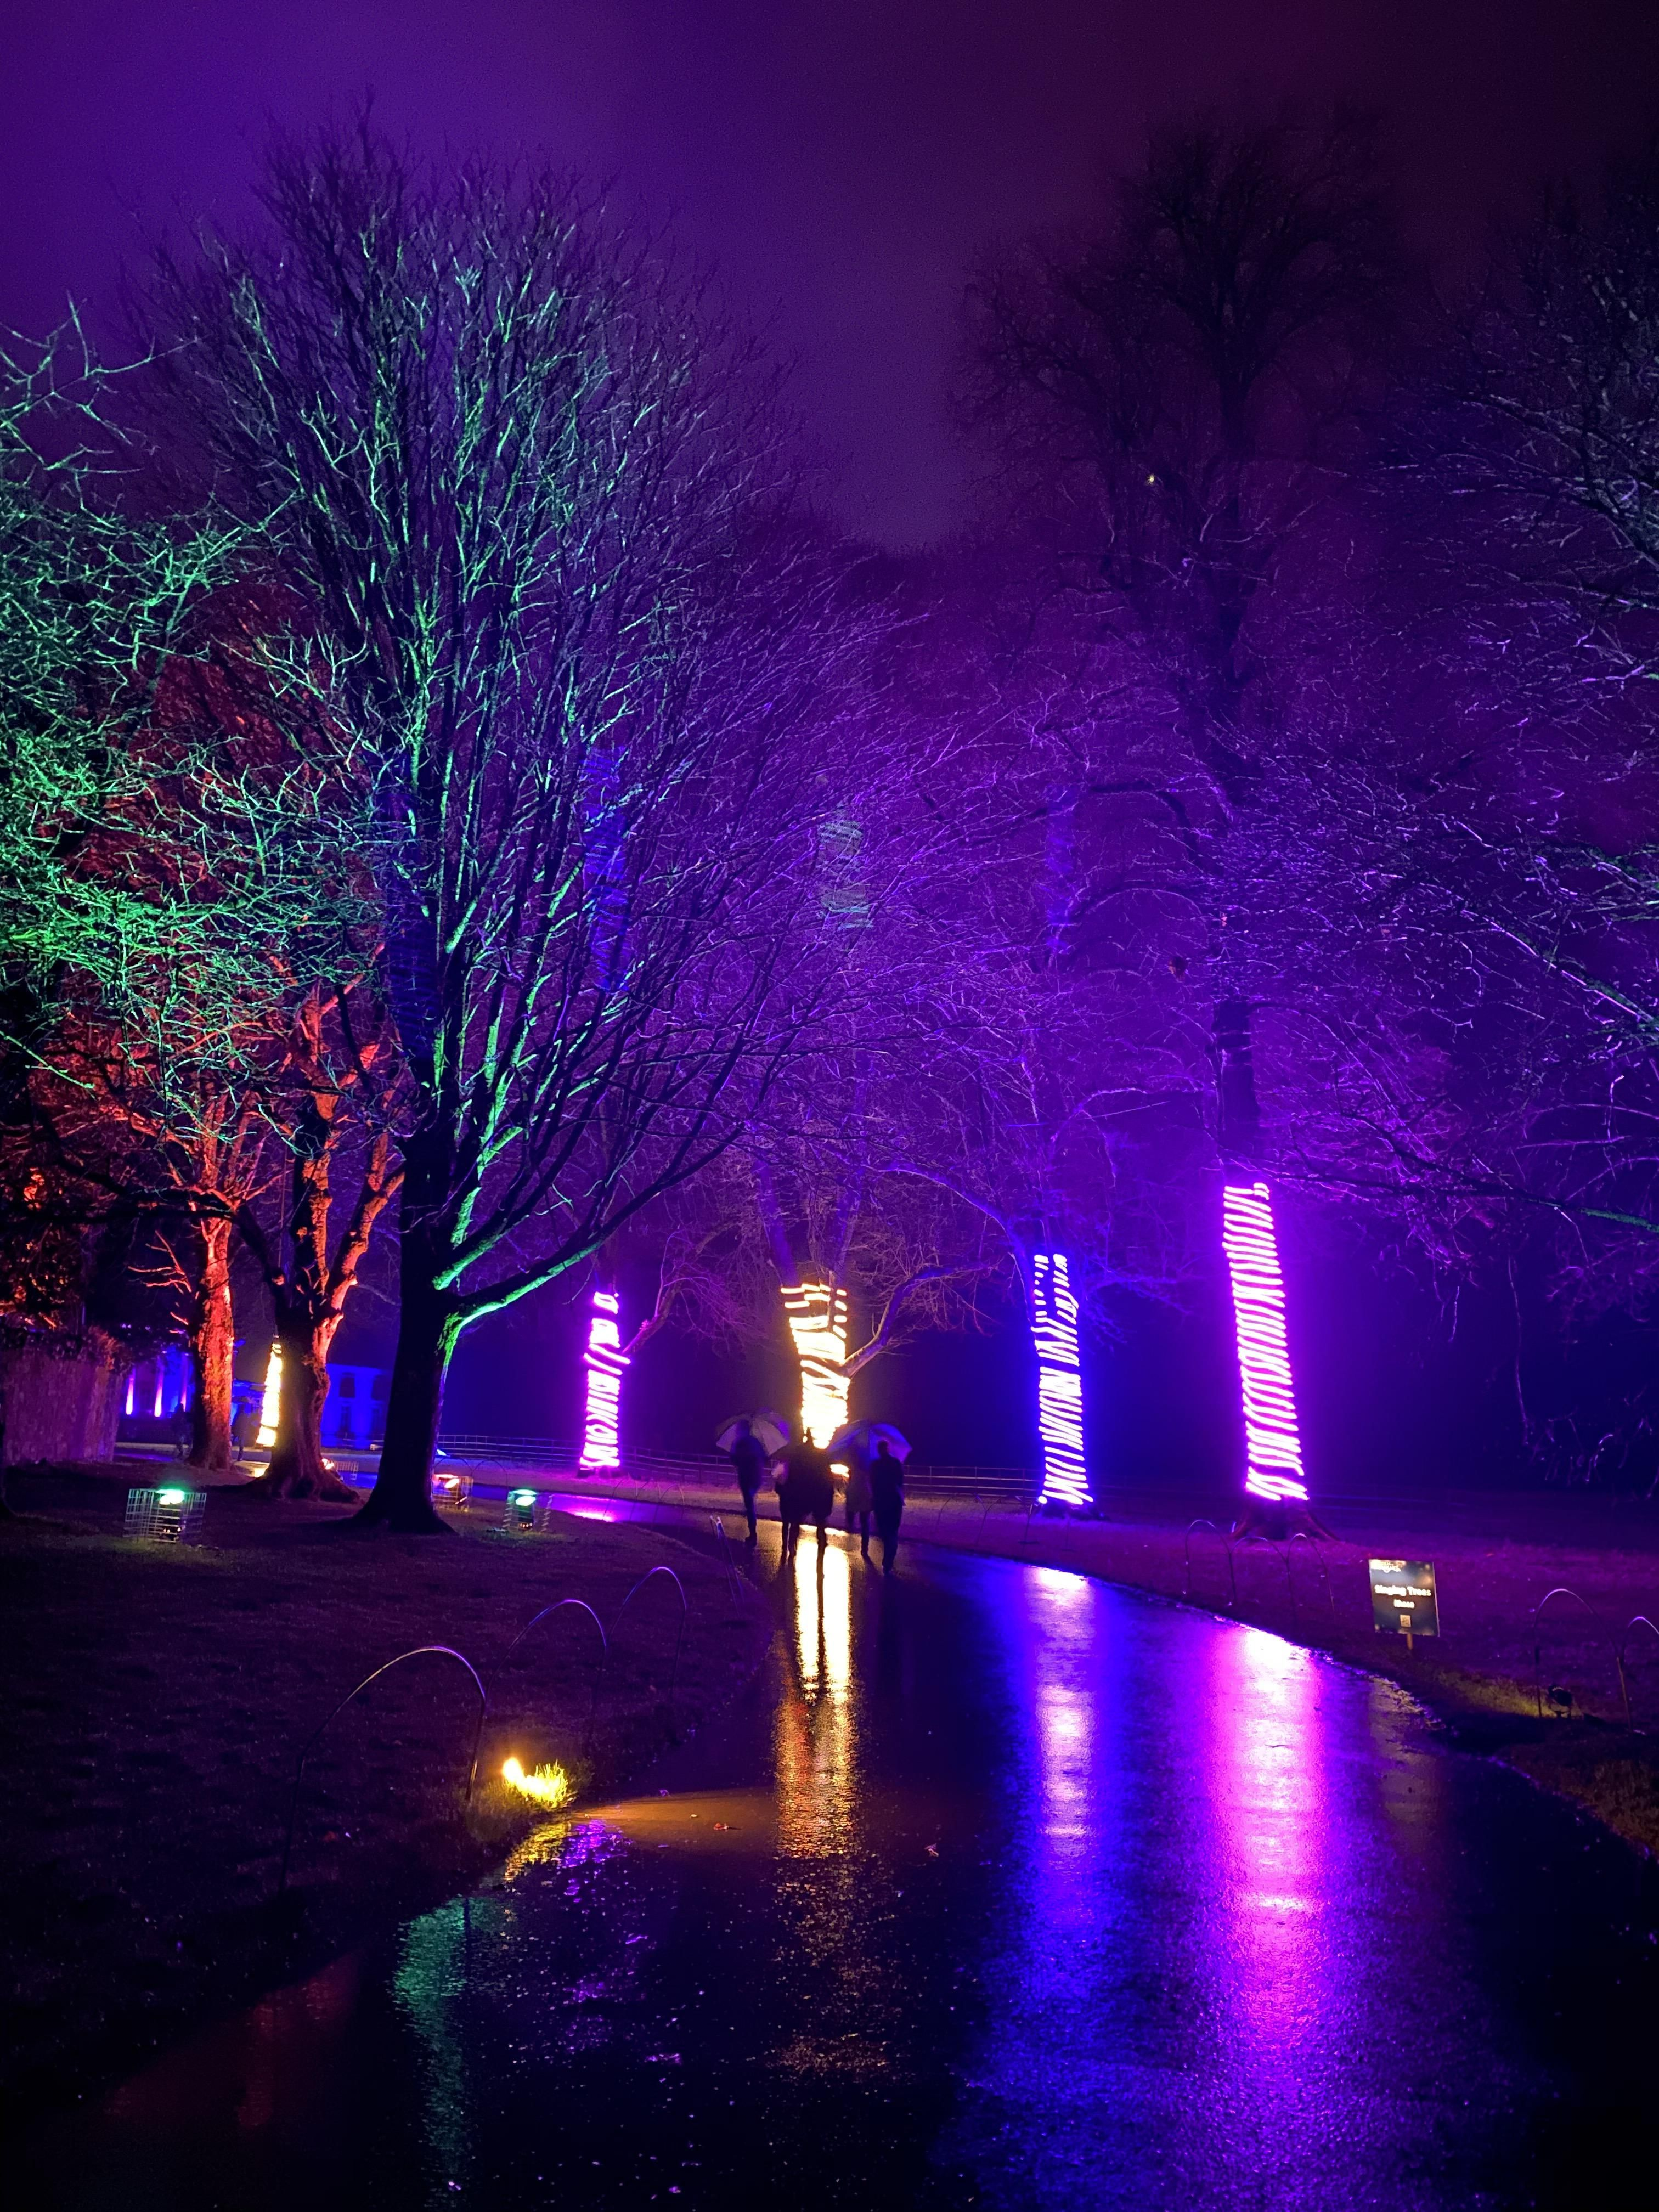 Itap Christmas Light Trail At Stourhead National Trust In Wiltshire Uk Photo Capture Nature Incredible Christmas Lights Light Trails Uk Photos